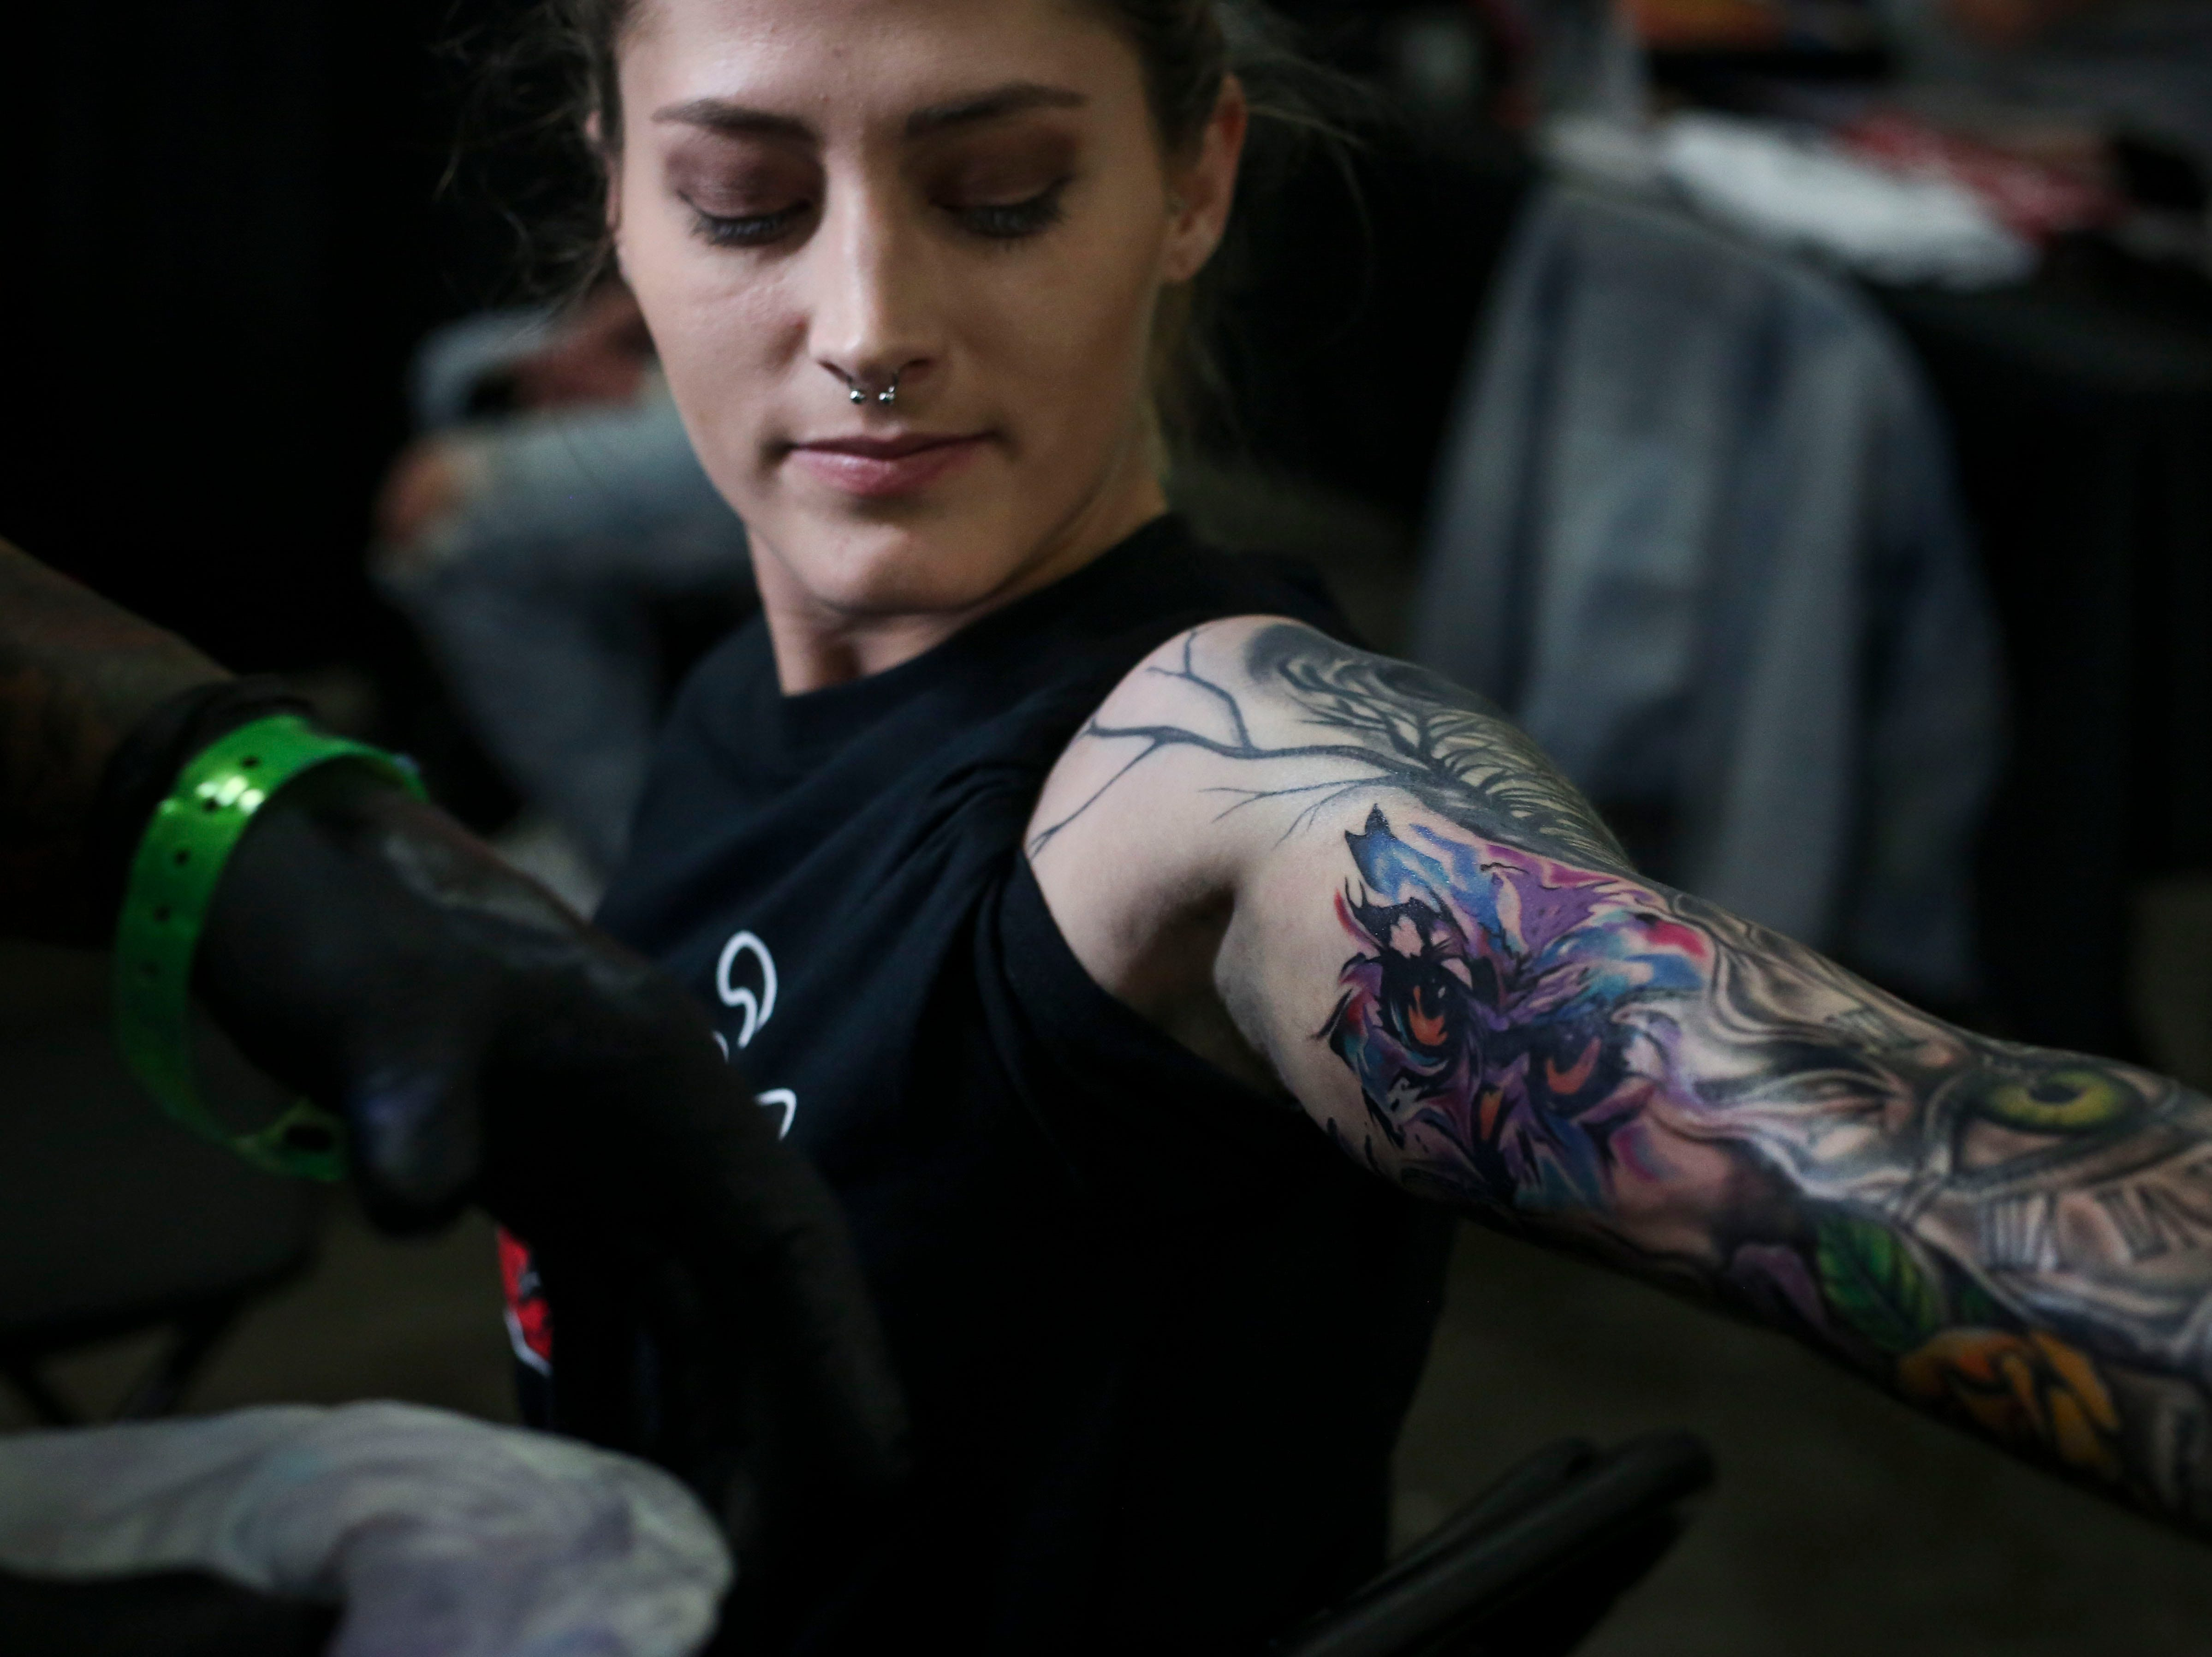 Alonzo Chappell cleans up Michelle Adwell's tattoos ahead of the tattoo contest during the 8th Annual Louisville Tattoo Arts Convention put on by Villain Arts at the Kentucky Expo Center in Louisville, Ky. on Saturday, April 13, 2019.